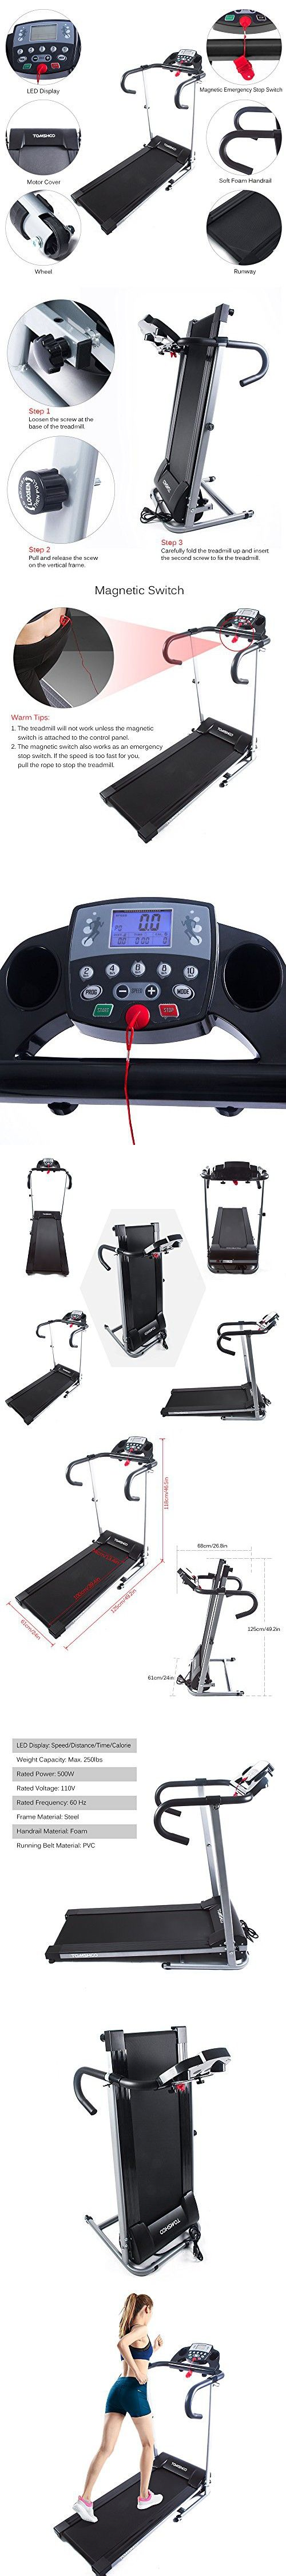 TOMSHOO 500W Folding Motorized Treadmill Electric Running Jogging Machine Home Gym Workout Fitness Machine